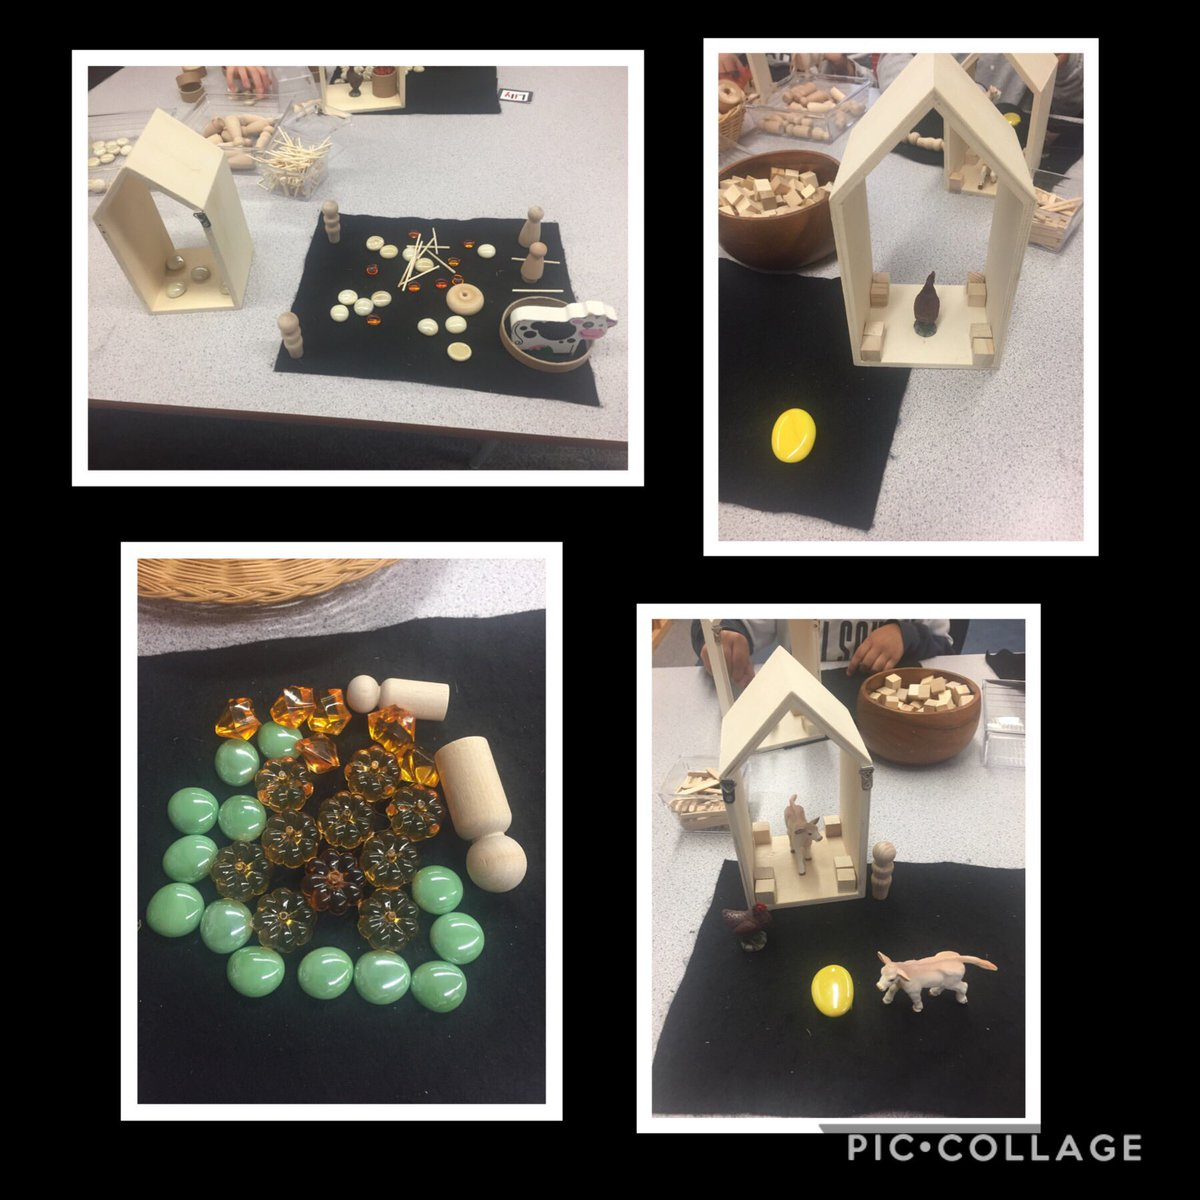 After a VERY soggy field trip to the pumpkin patch - we used loose parts to build the thing they liked the best. Friends either chose pumpkin picking or seeing the animals #westhamislandherbfarm https://t.co/tBvuhaxkPo